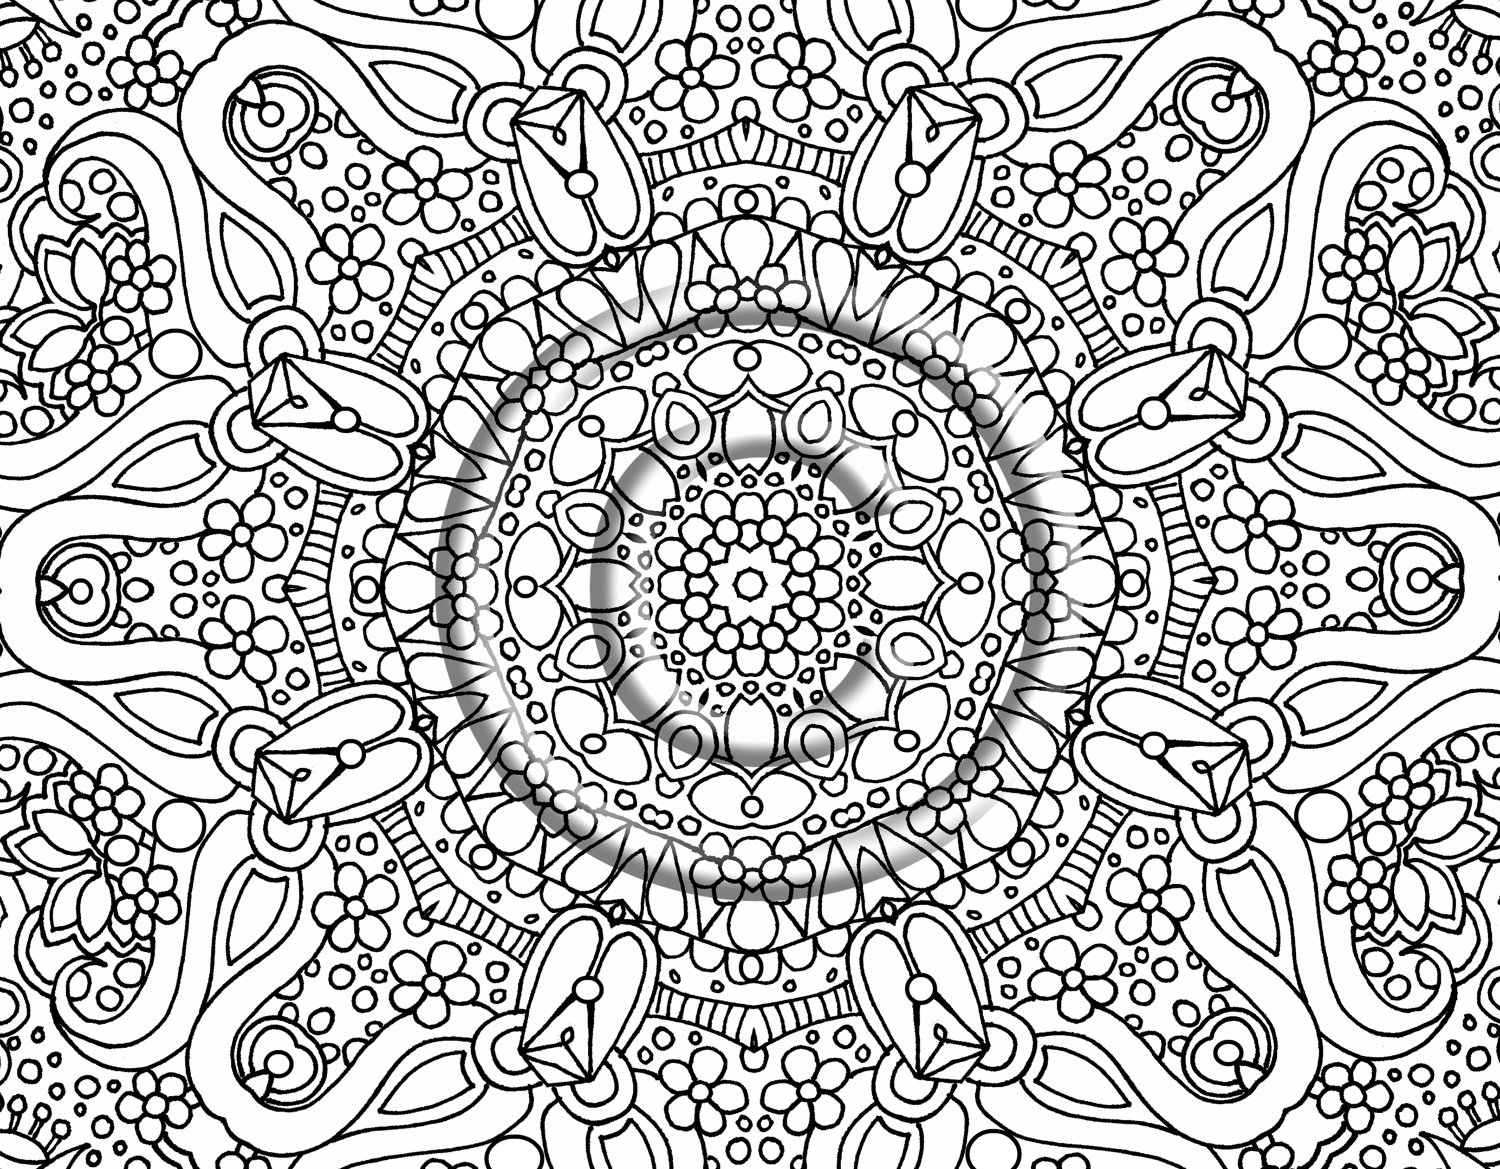 hard coloring pages for adults coloring pages for adults difficult animals 4 coloring pages for adults coloring hard